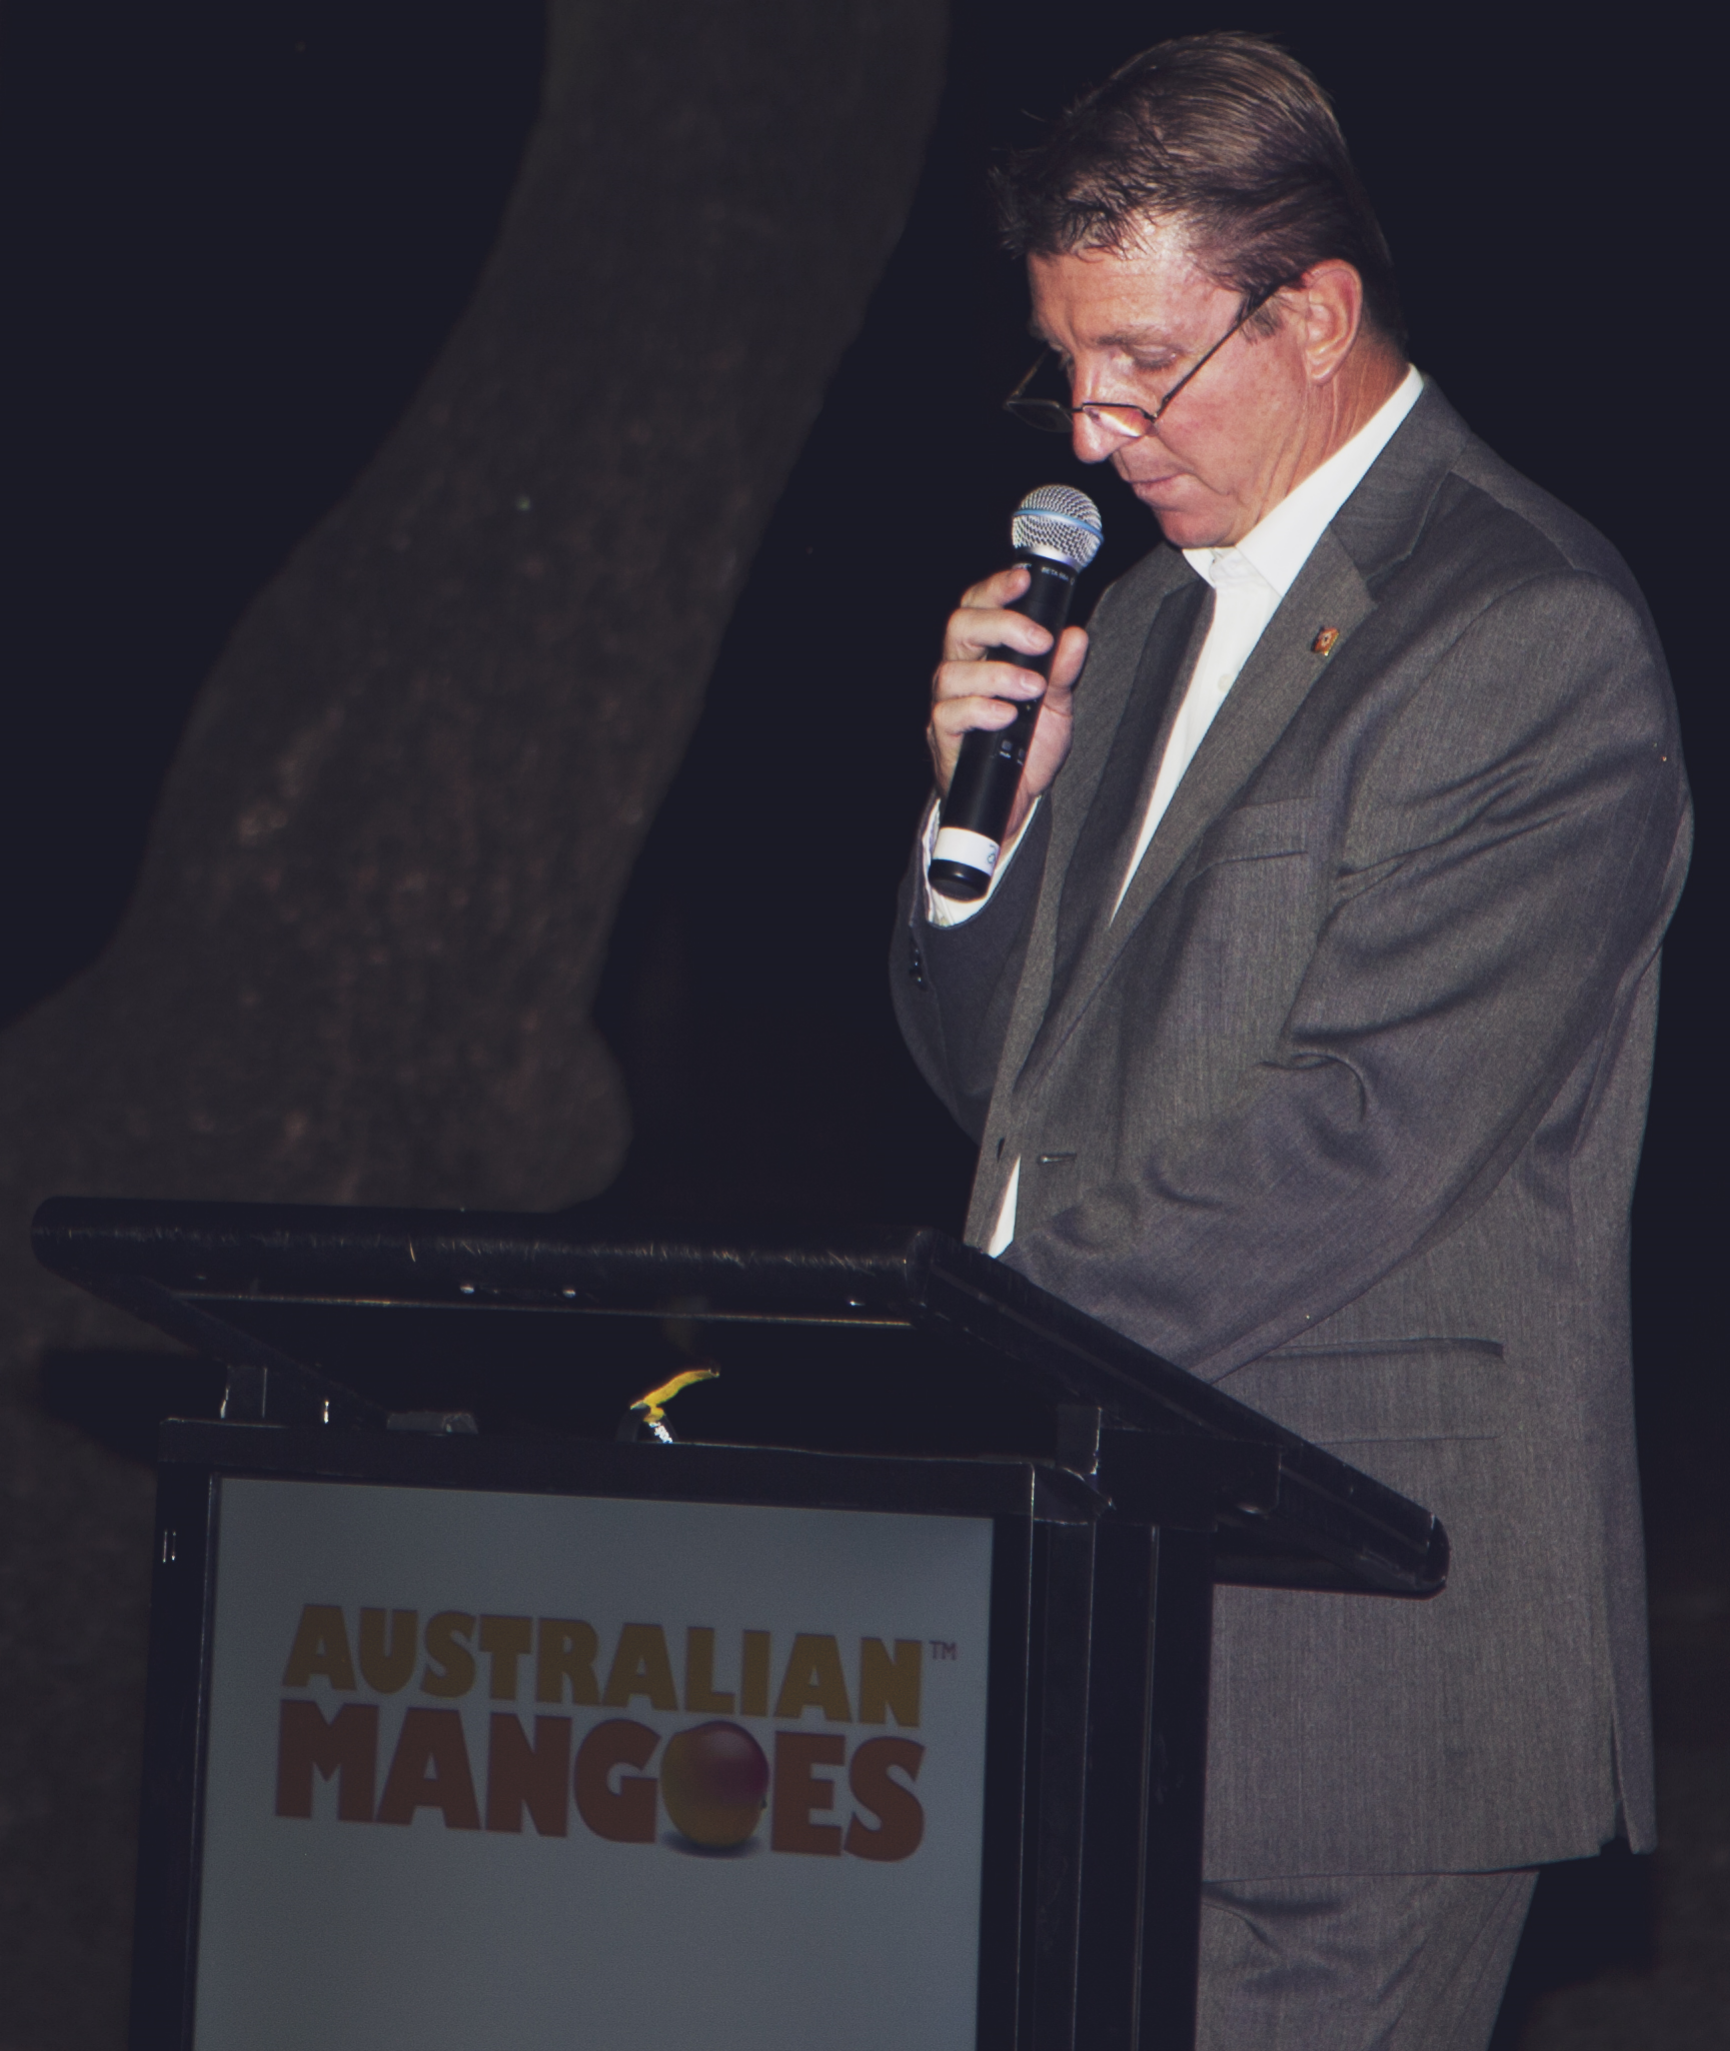 Northern Territory Minister for Primary Industry and Fisheries Willem Westra van Holthe opened the Conference at the Welcome Reception